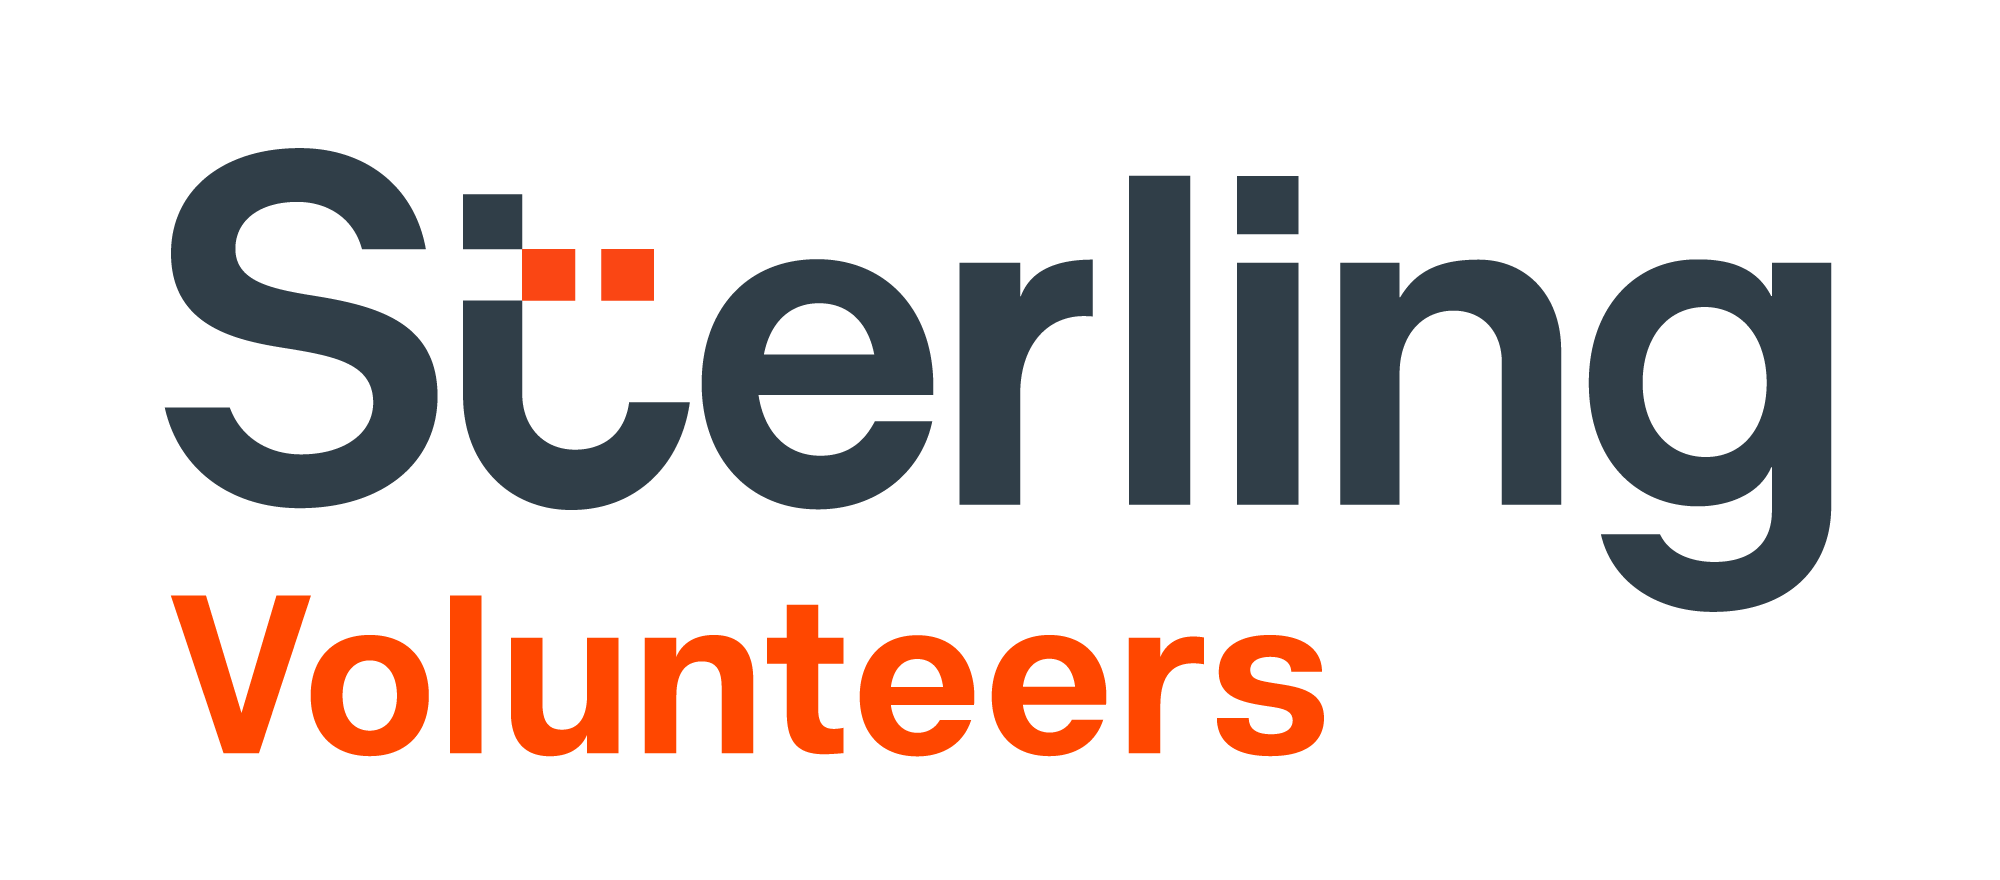 Sterling-Volunteers-RGB-2000x880-2